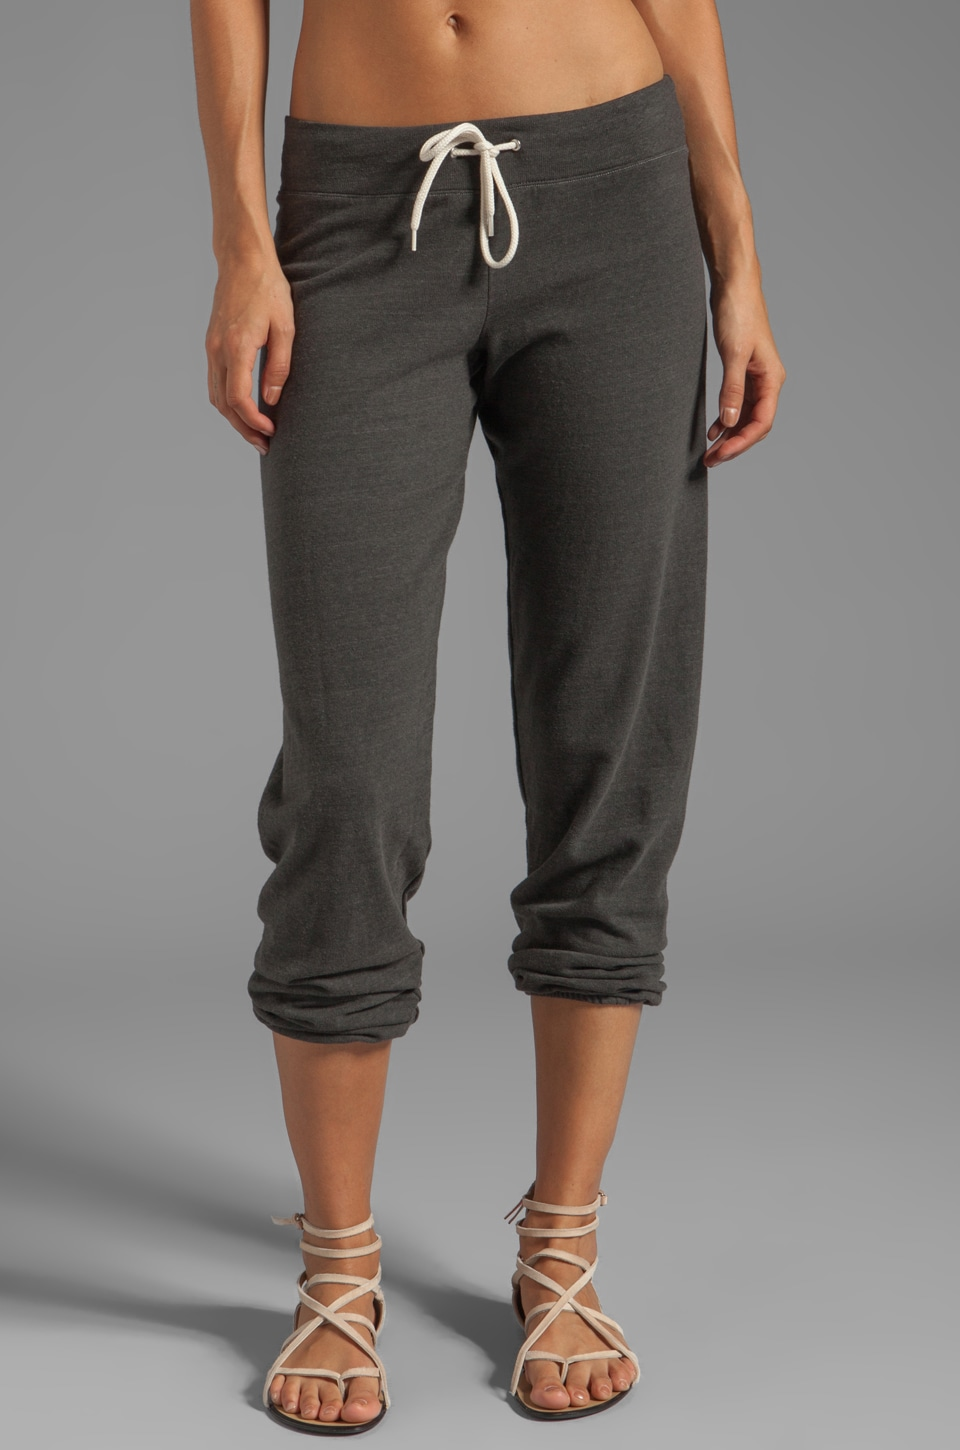 MONROW Vintage Fleece Sweats in Driftwood